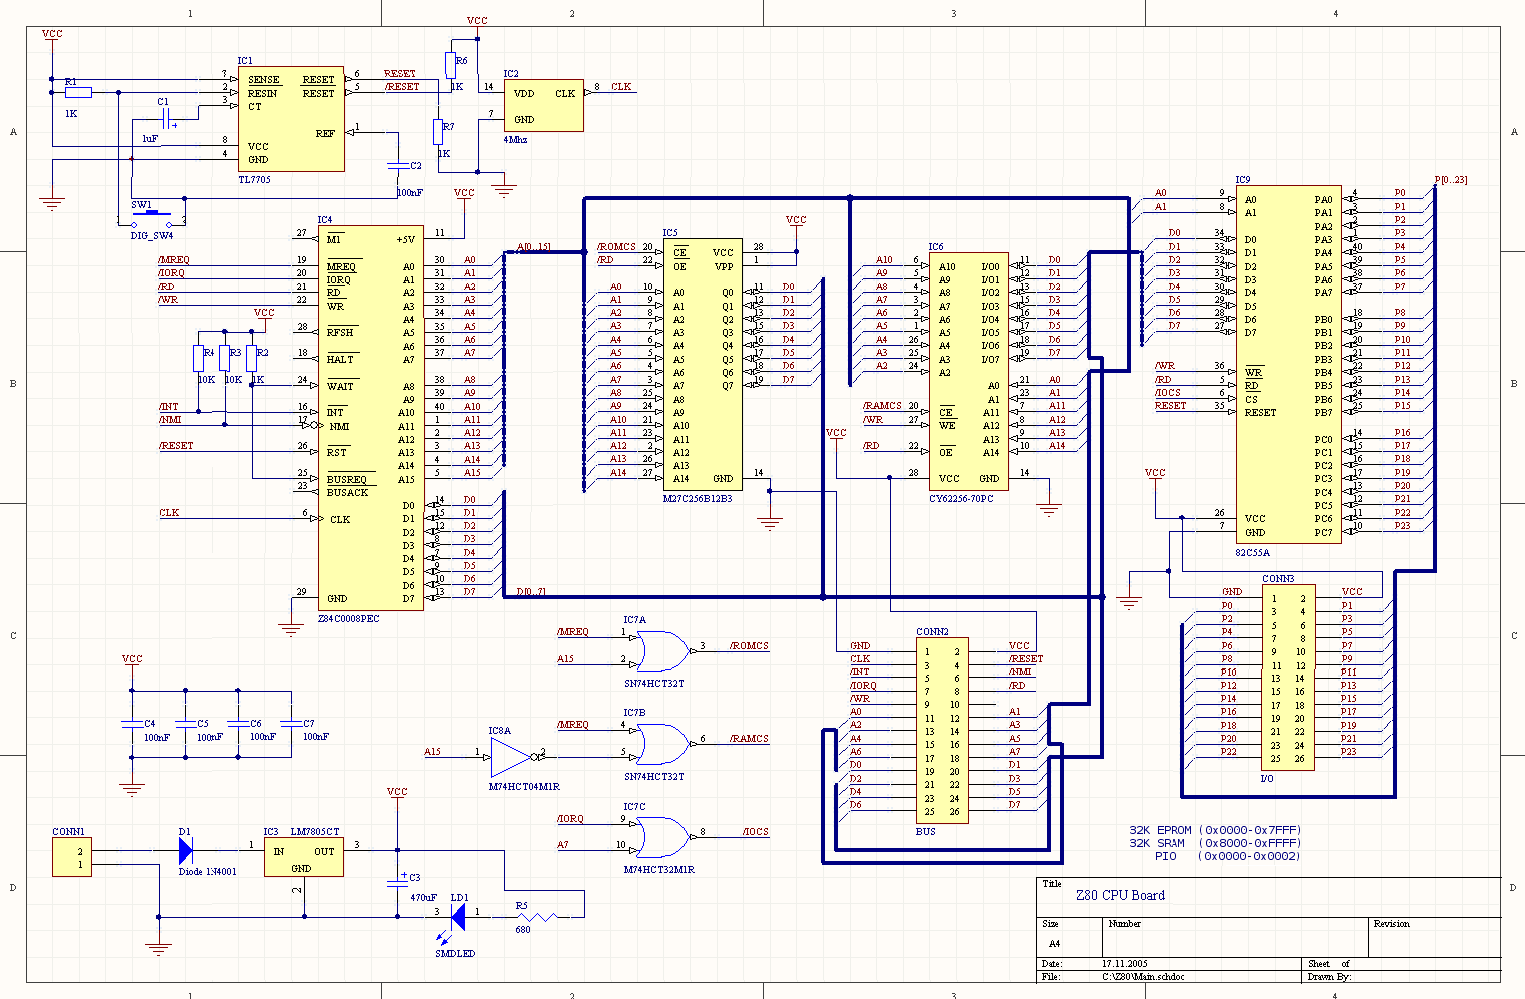 A Homebrew Z80 Microcomputer Circuit Board Diagram Layout There Are Also Pdf Files Of The Schematics And